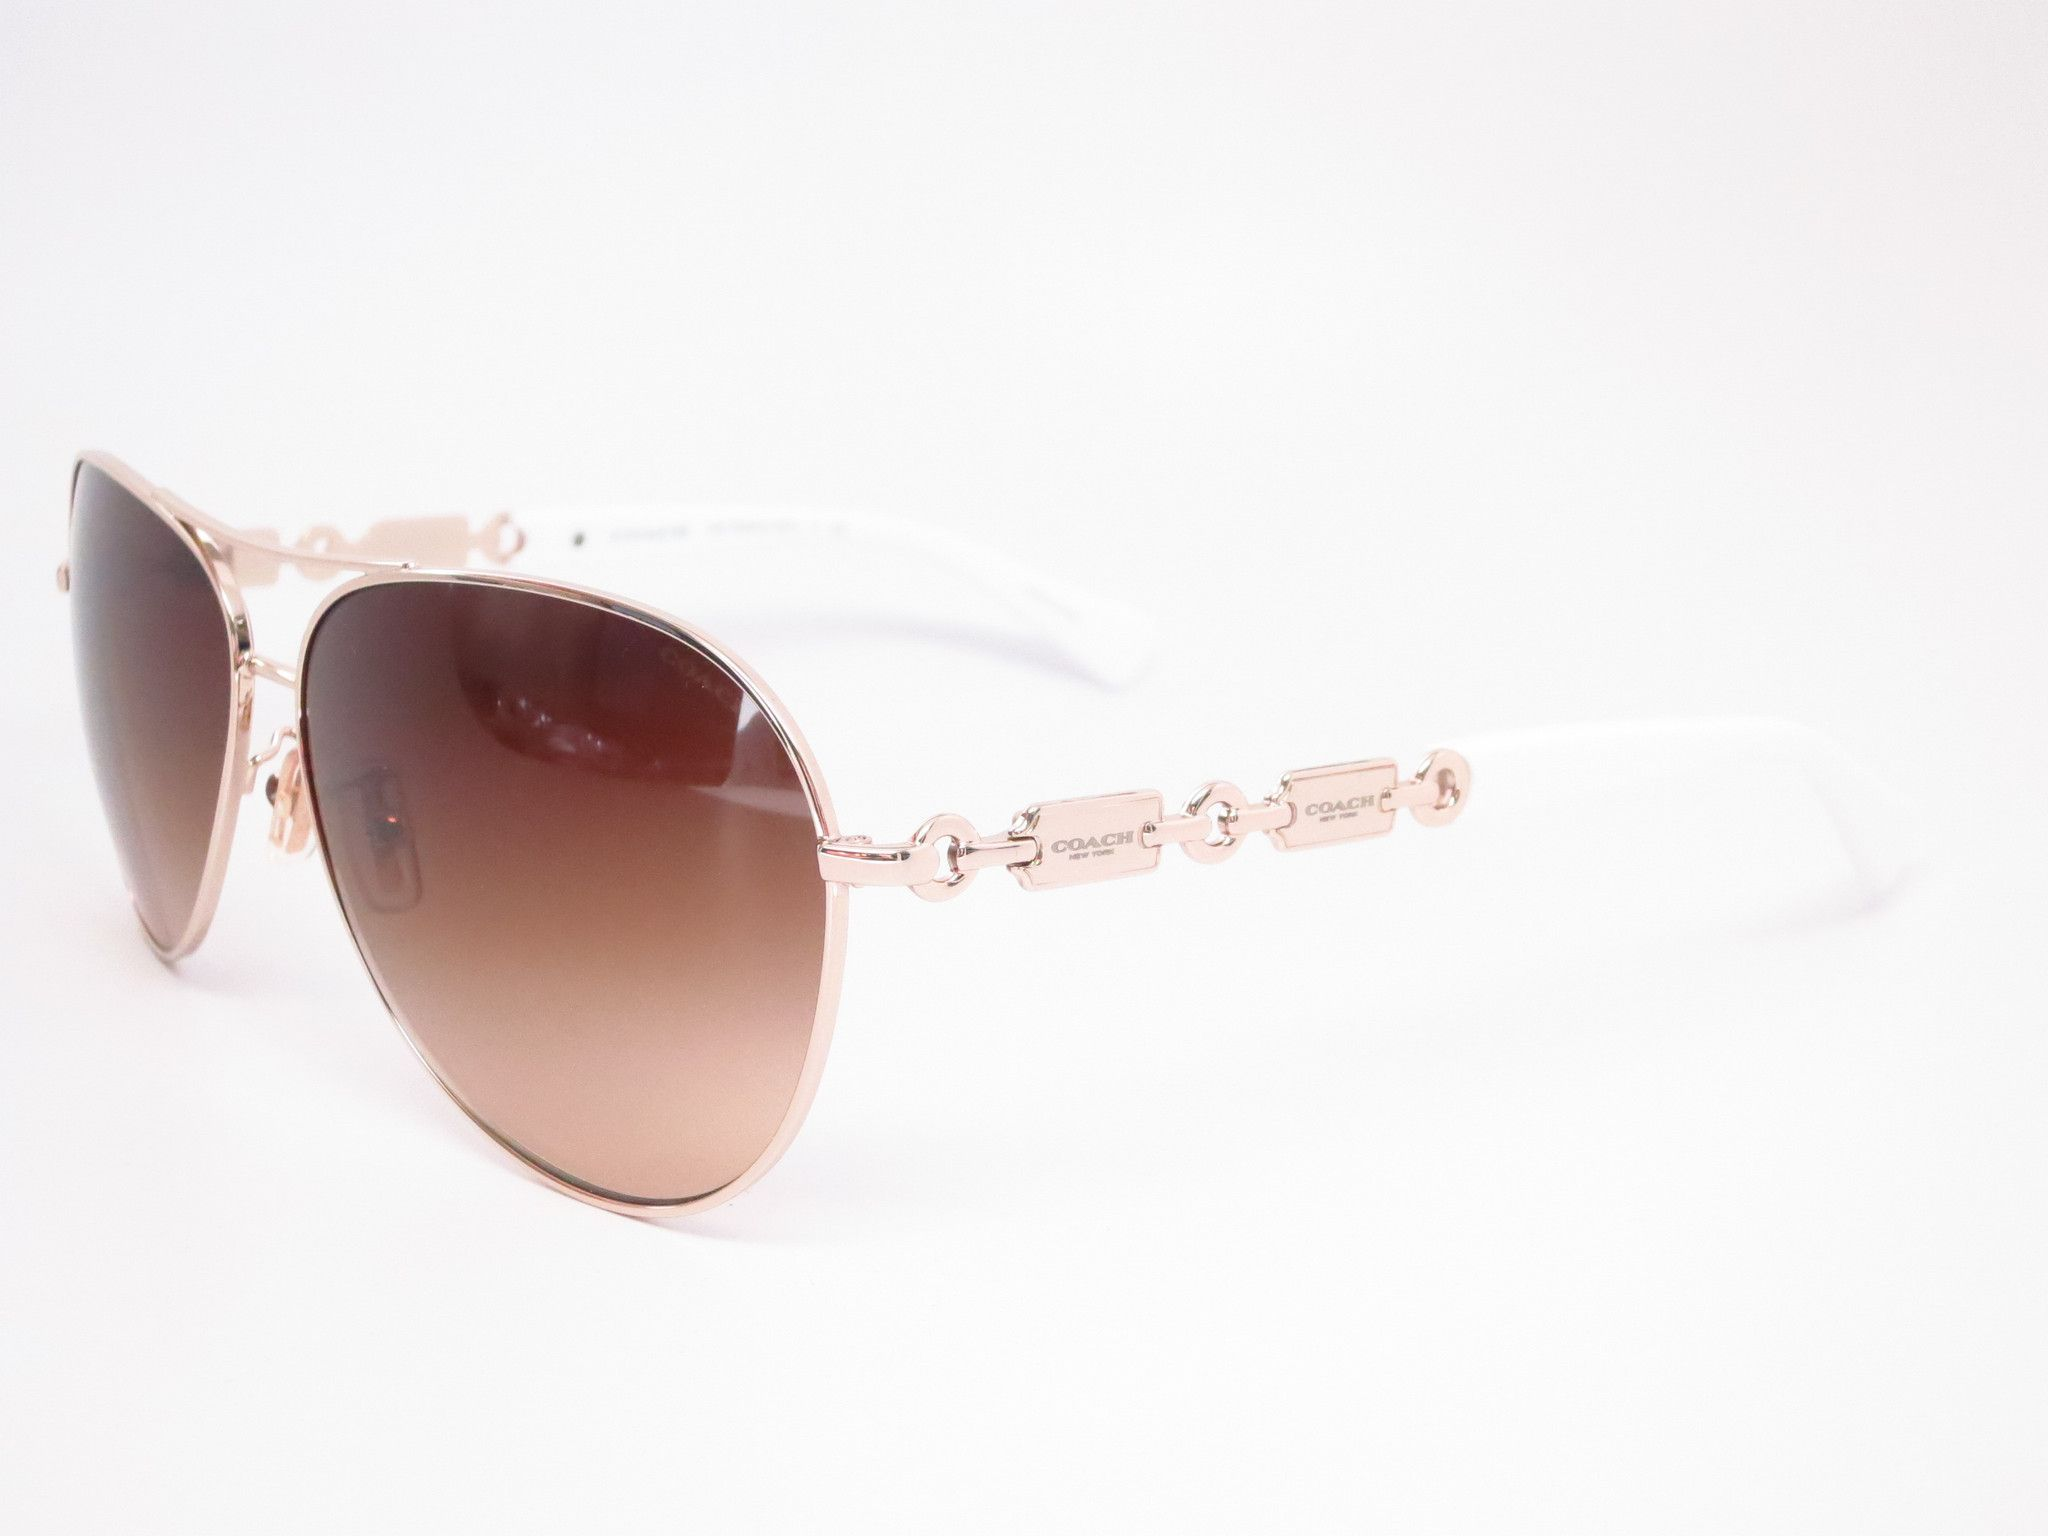 41602f40682 Coach HC 7048 9208 13 Light Gold   White Sunglasses